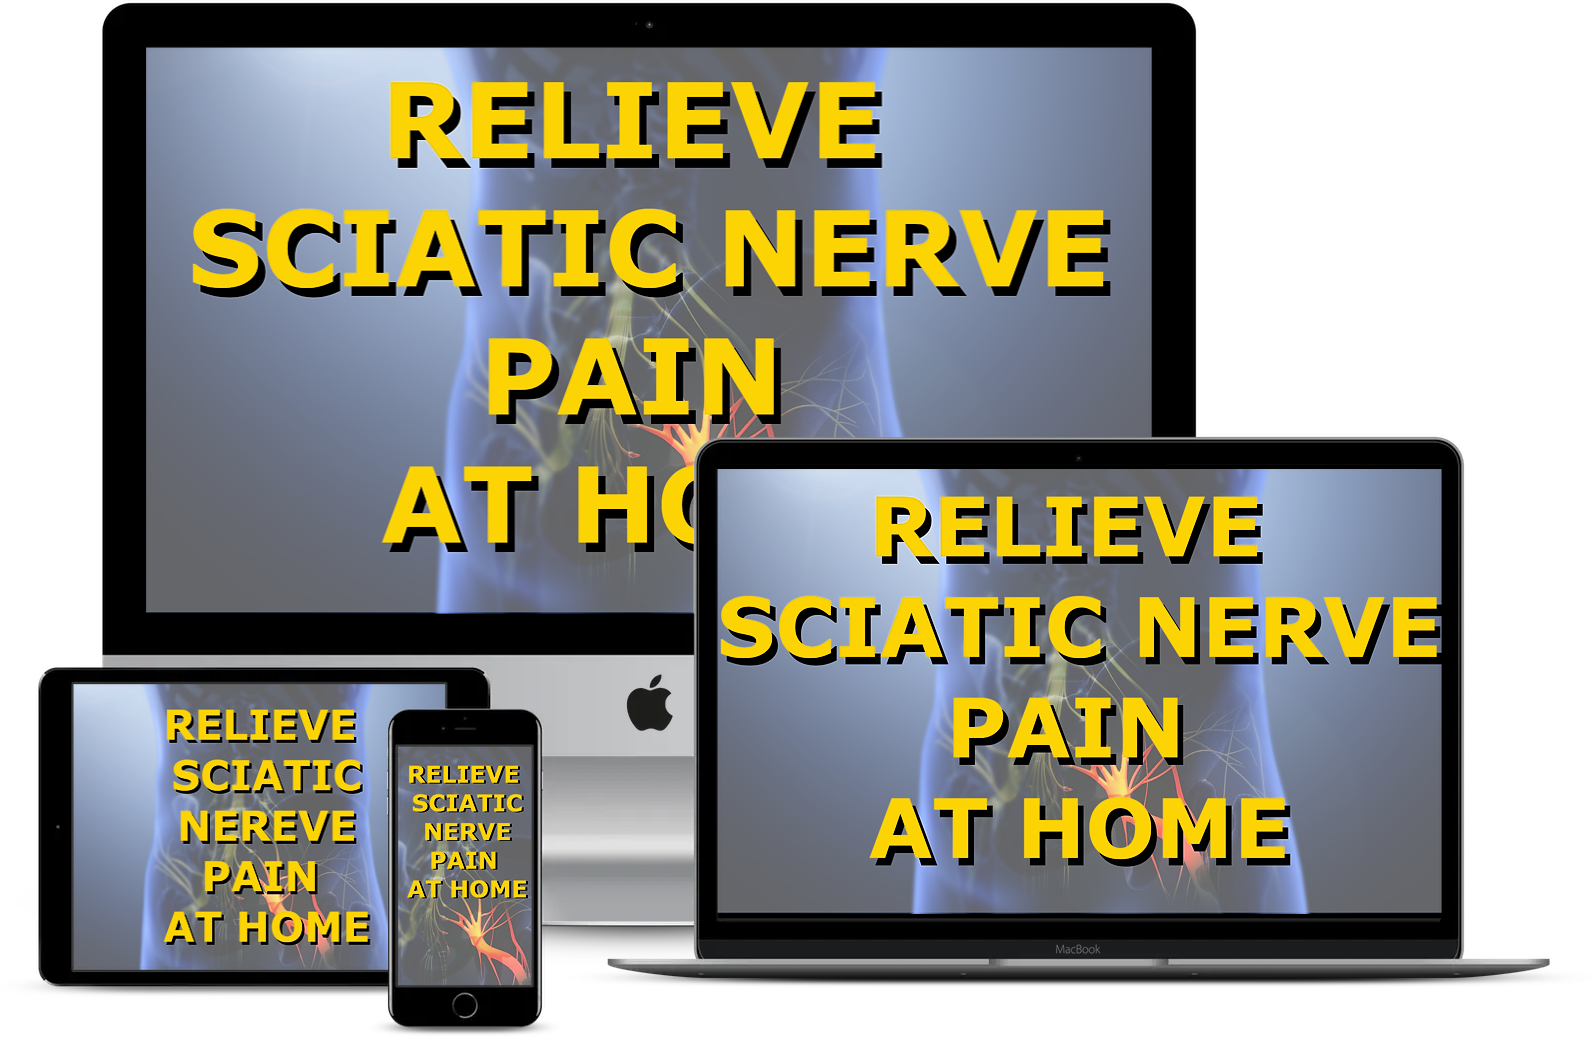 Relieve Sciatic Nerve Pain At Home